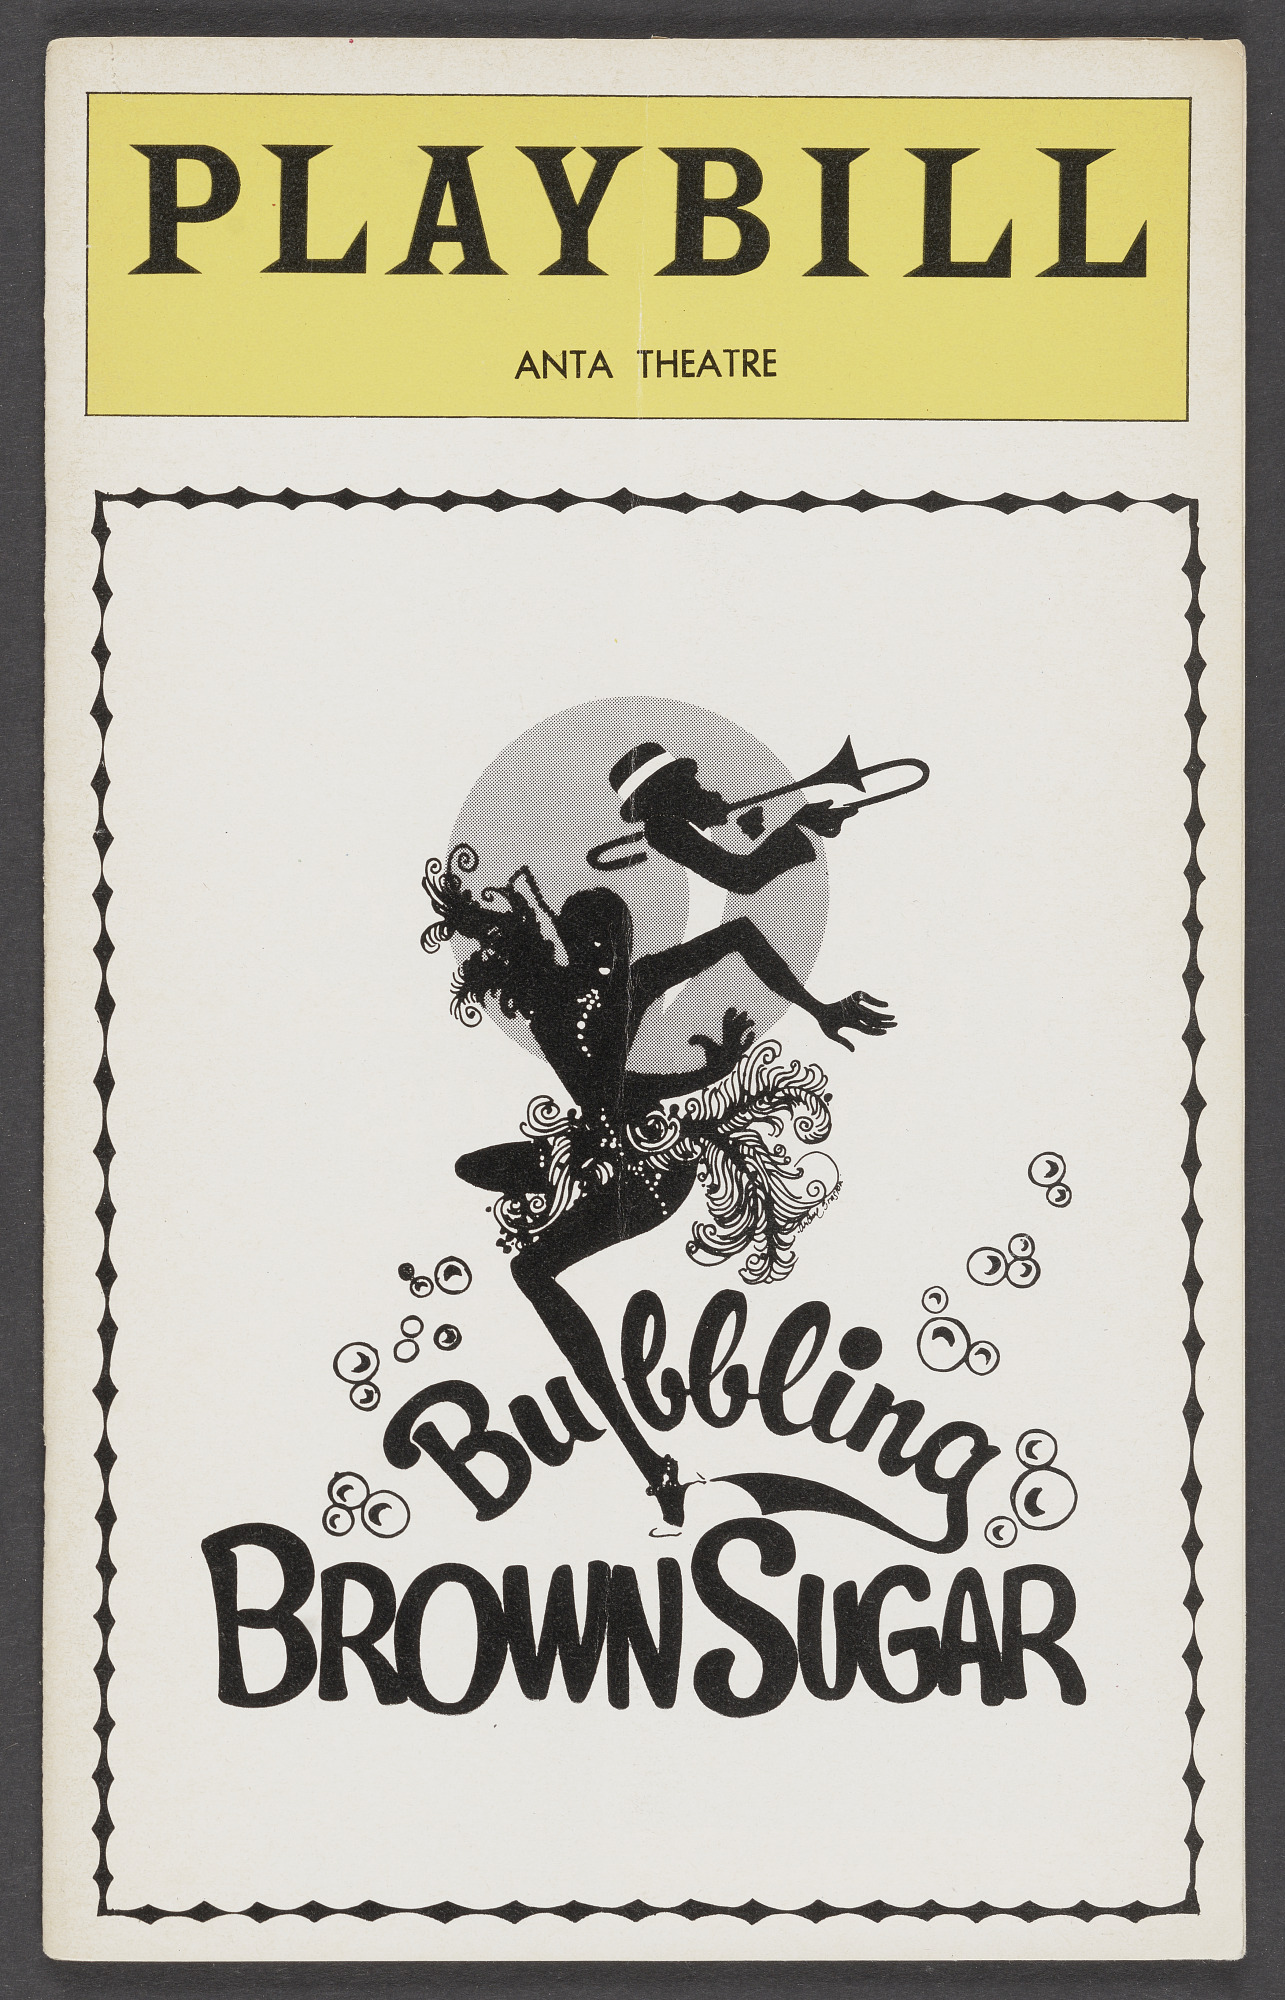 Image for Playbill for Bubbling Brown Sugar